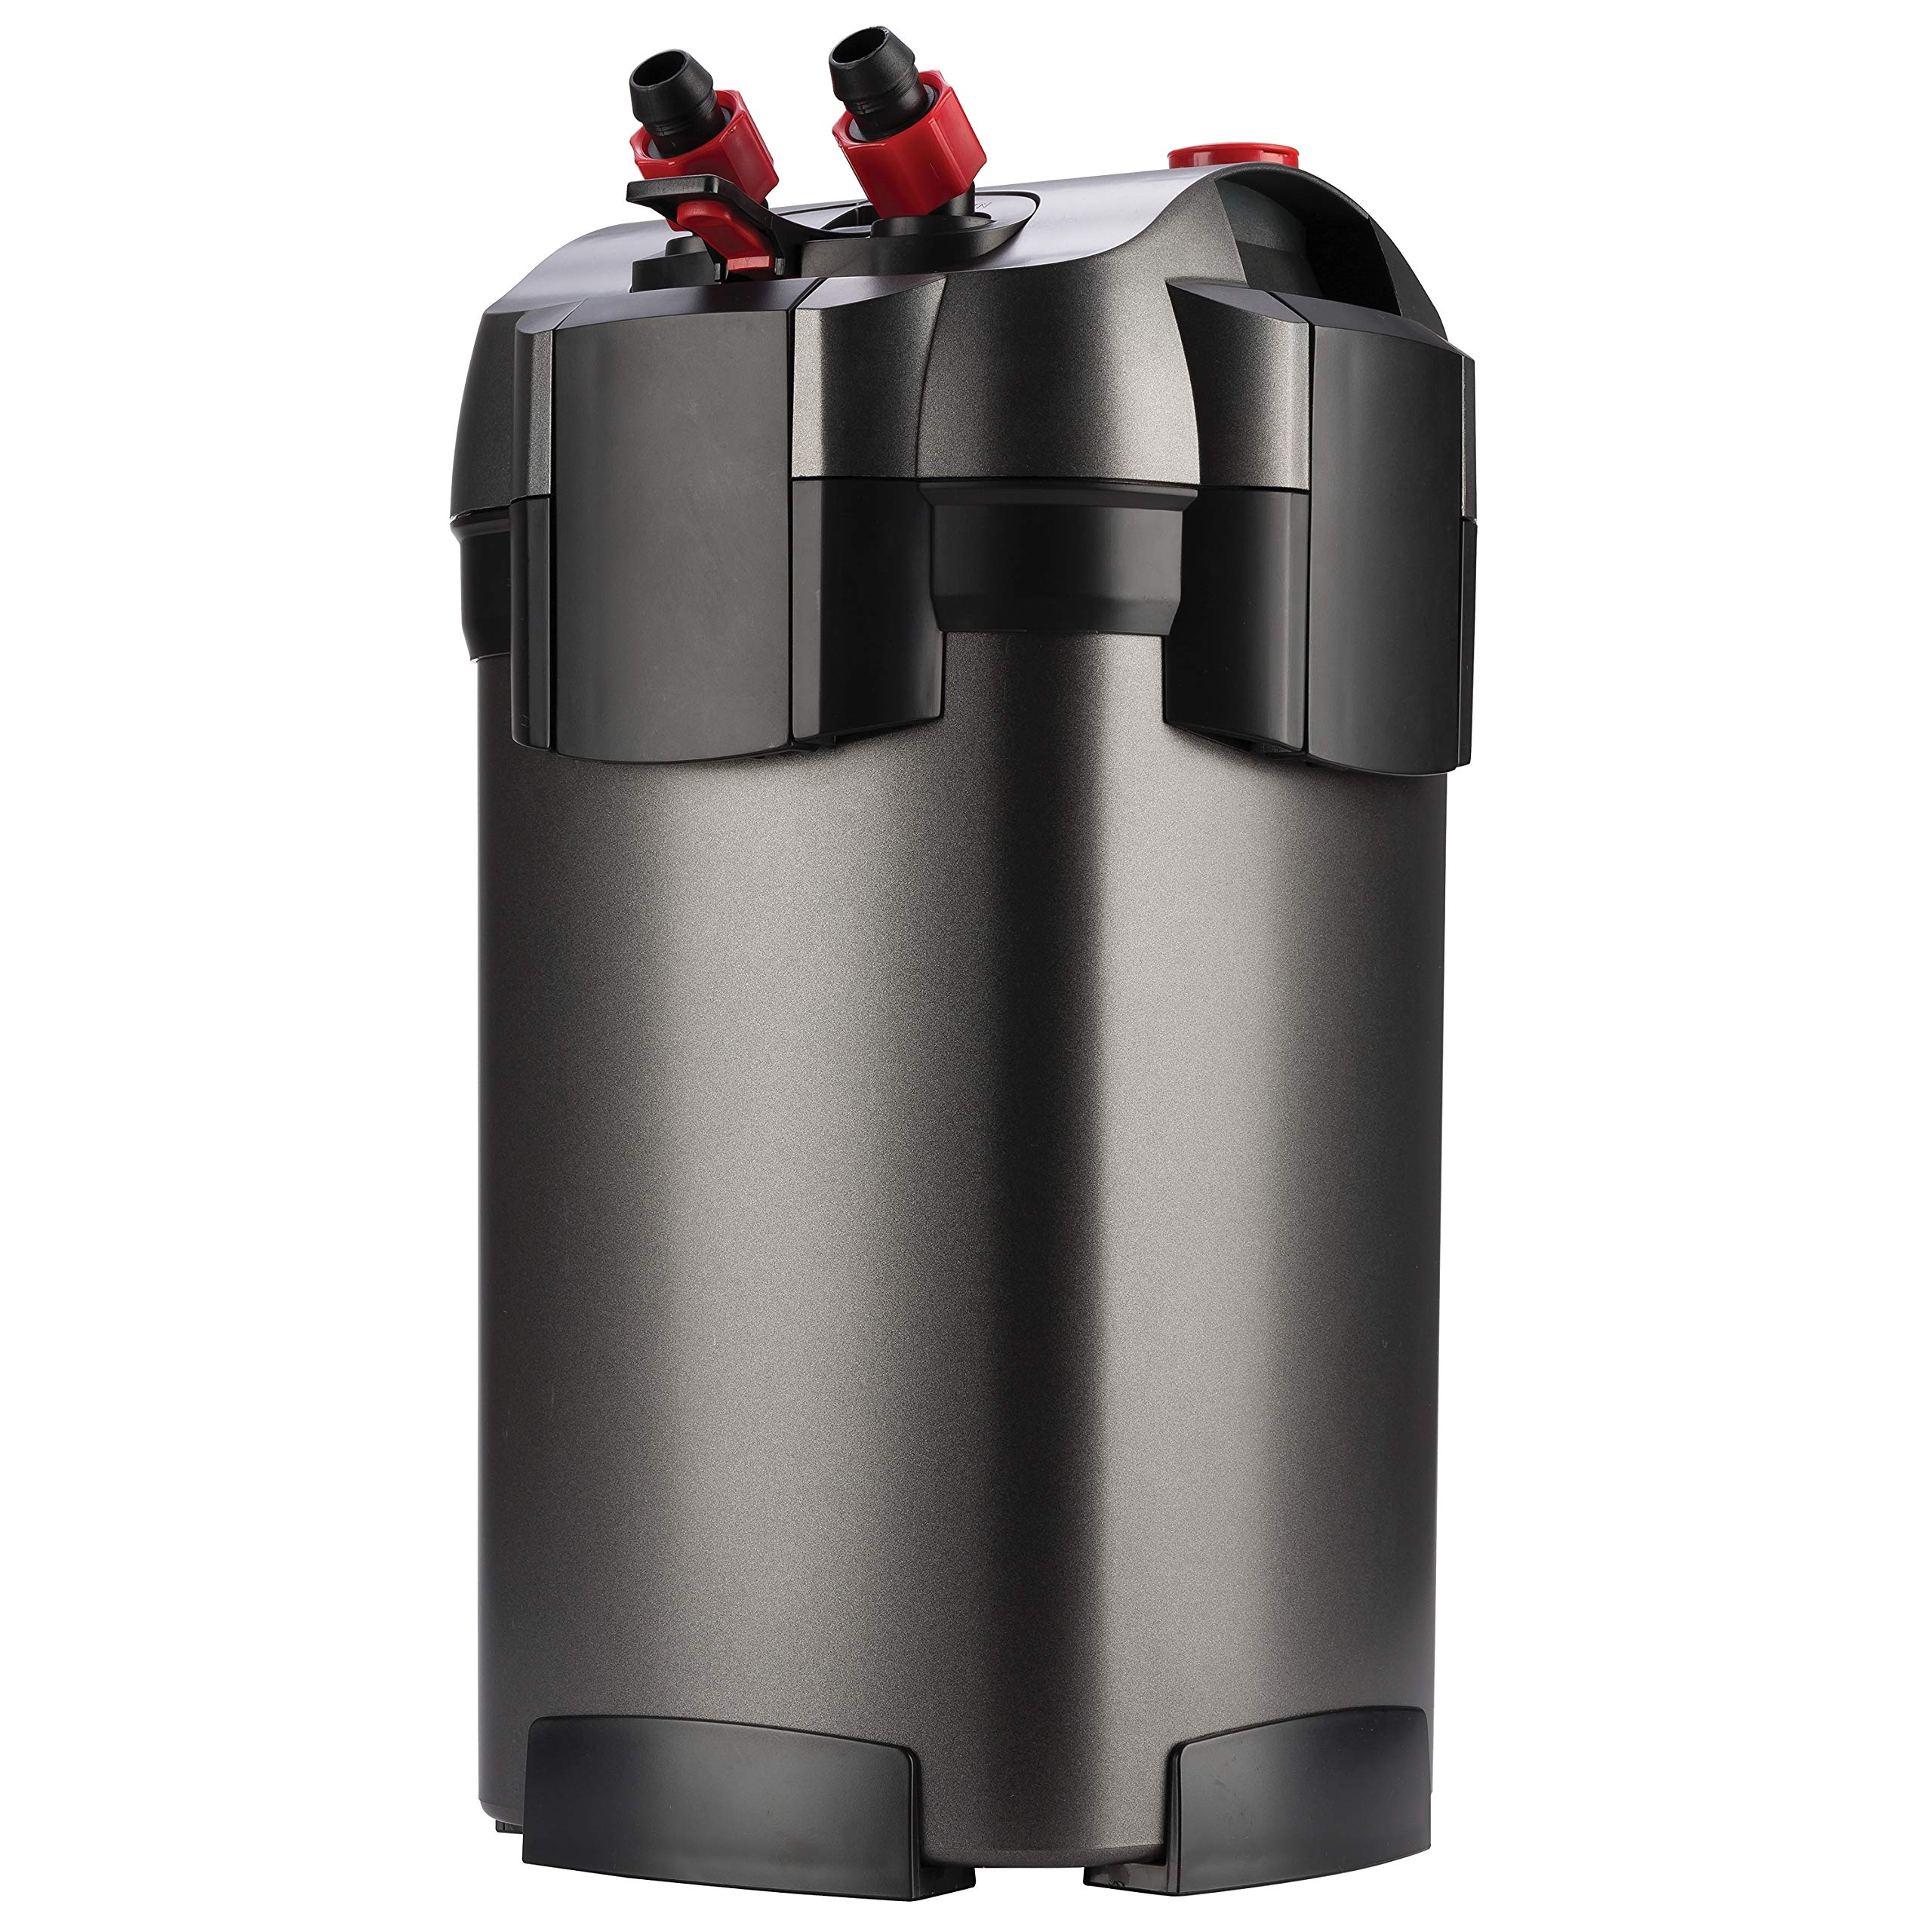 MarineLand Magniflow Canister Filter for Aquariums, Easy Maintenance by MarineLand